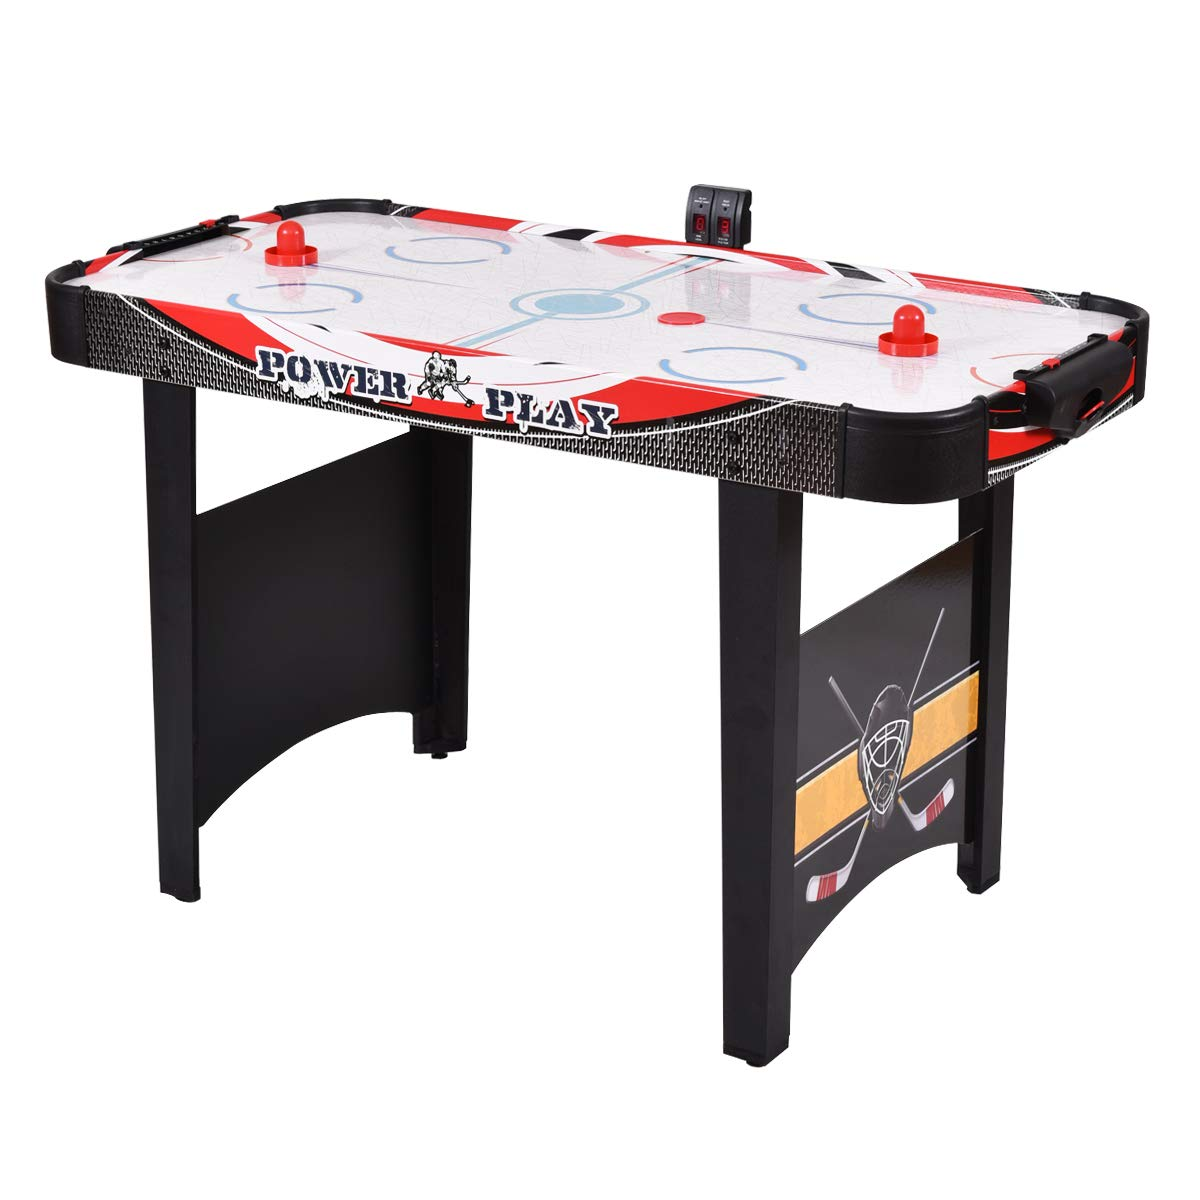 "GYMAX 48"" Air Hockey Table with 2 Pucks 2 Pushers Electronic Scorer"